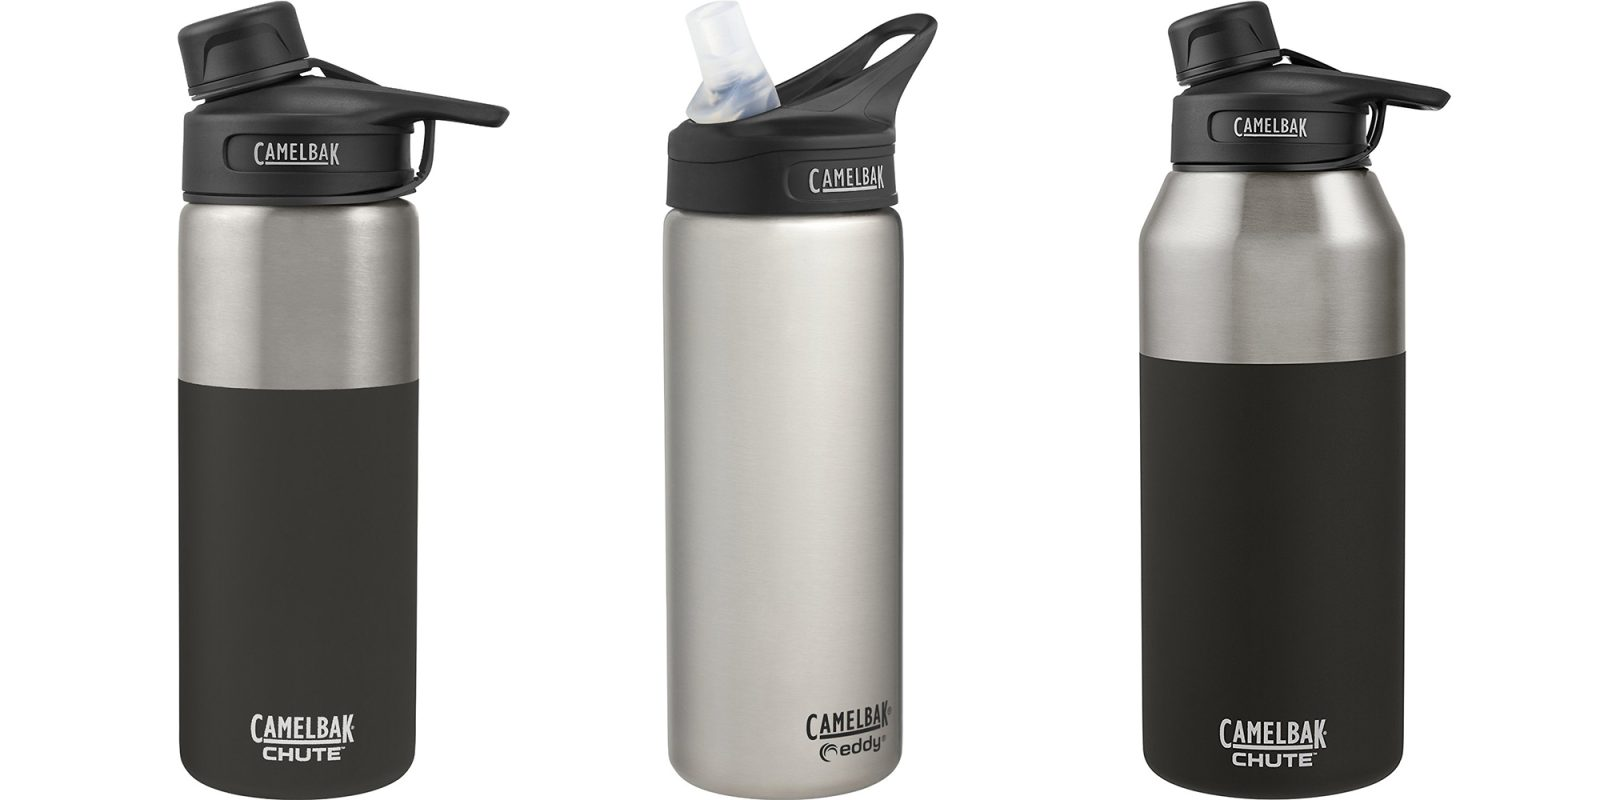 644546c299 Amazon is discounting Camelbak Water Bottles down to all-time lows, starts  at $13.50 Prime shipped